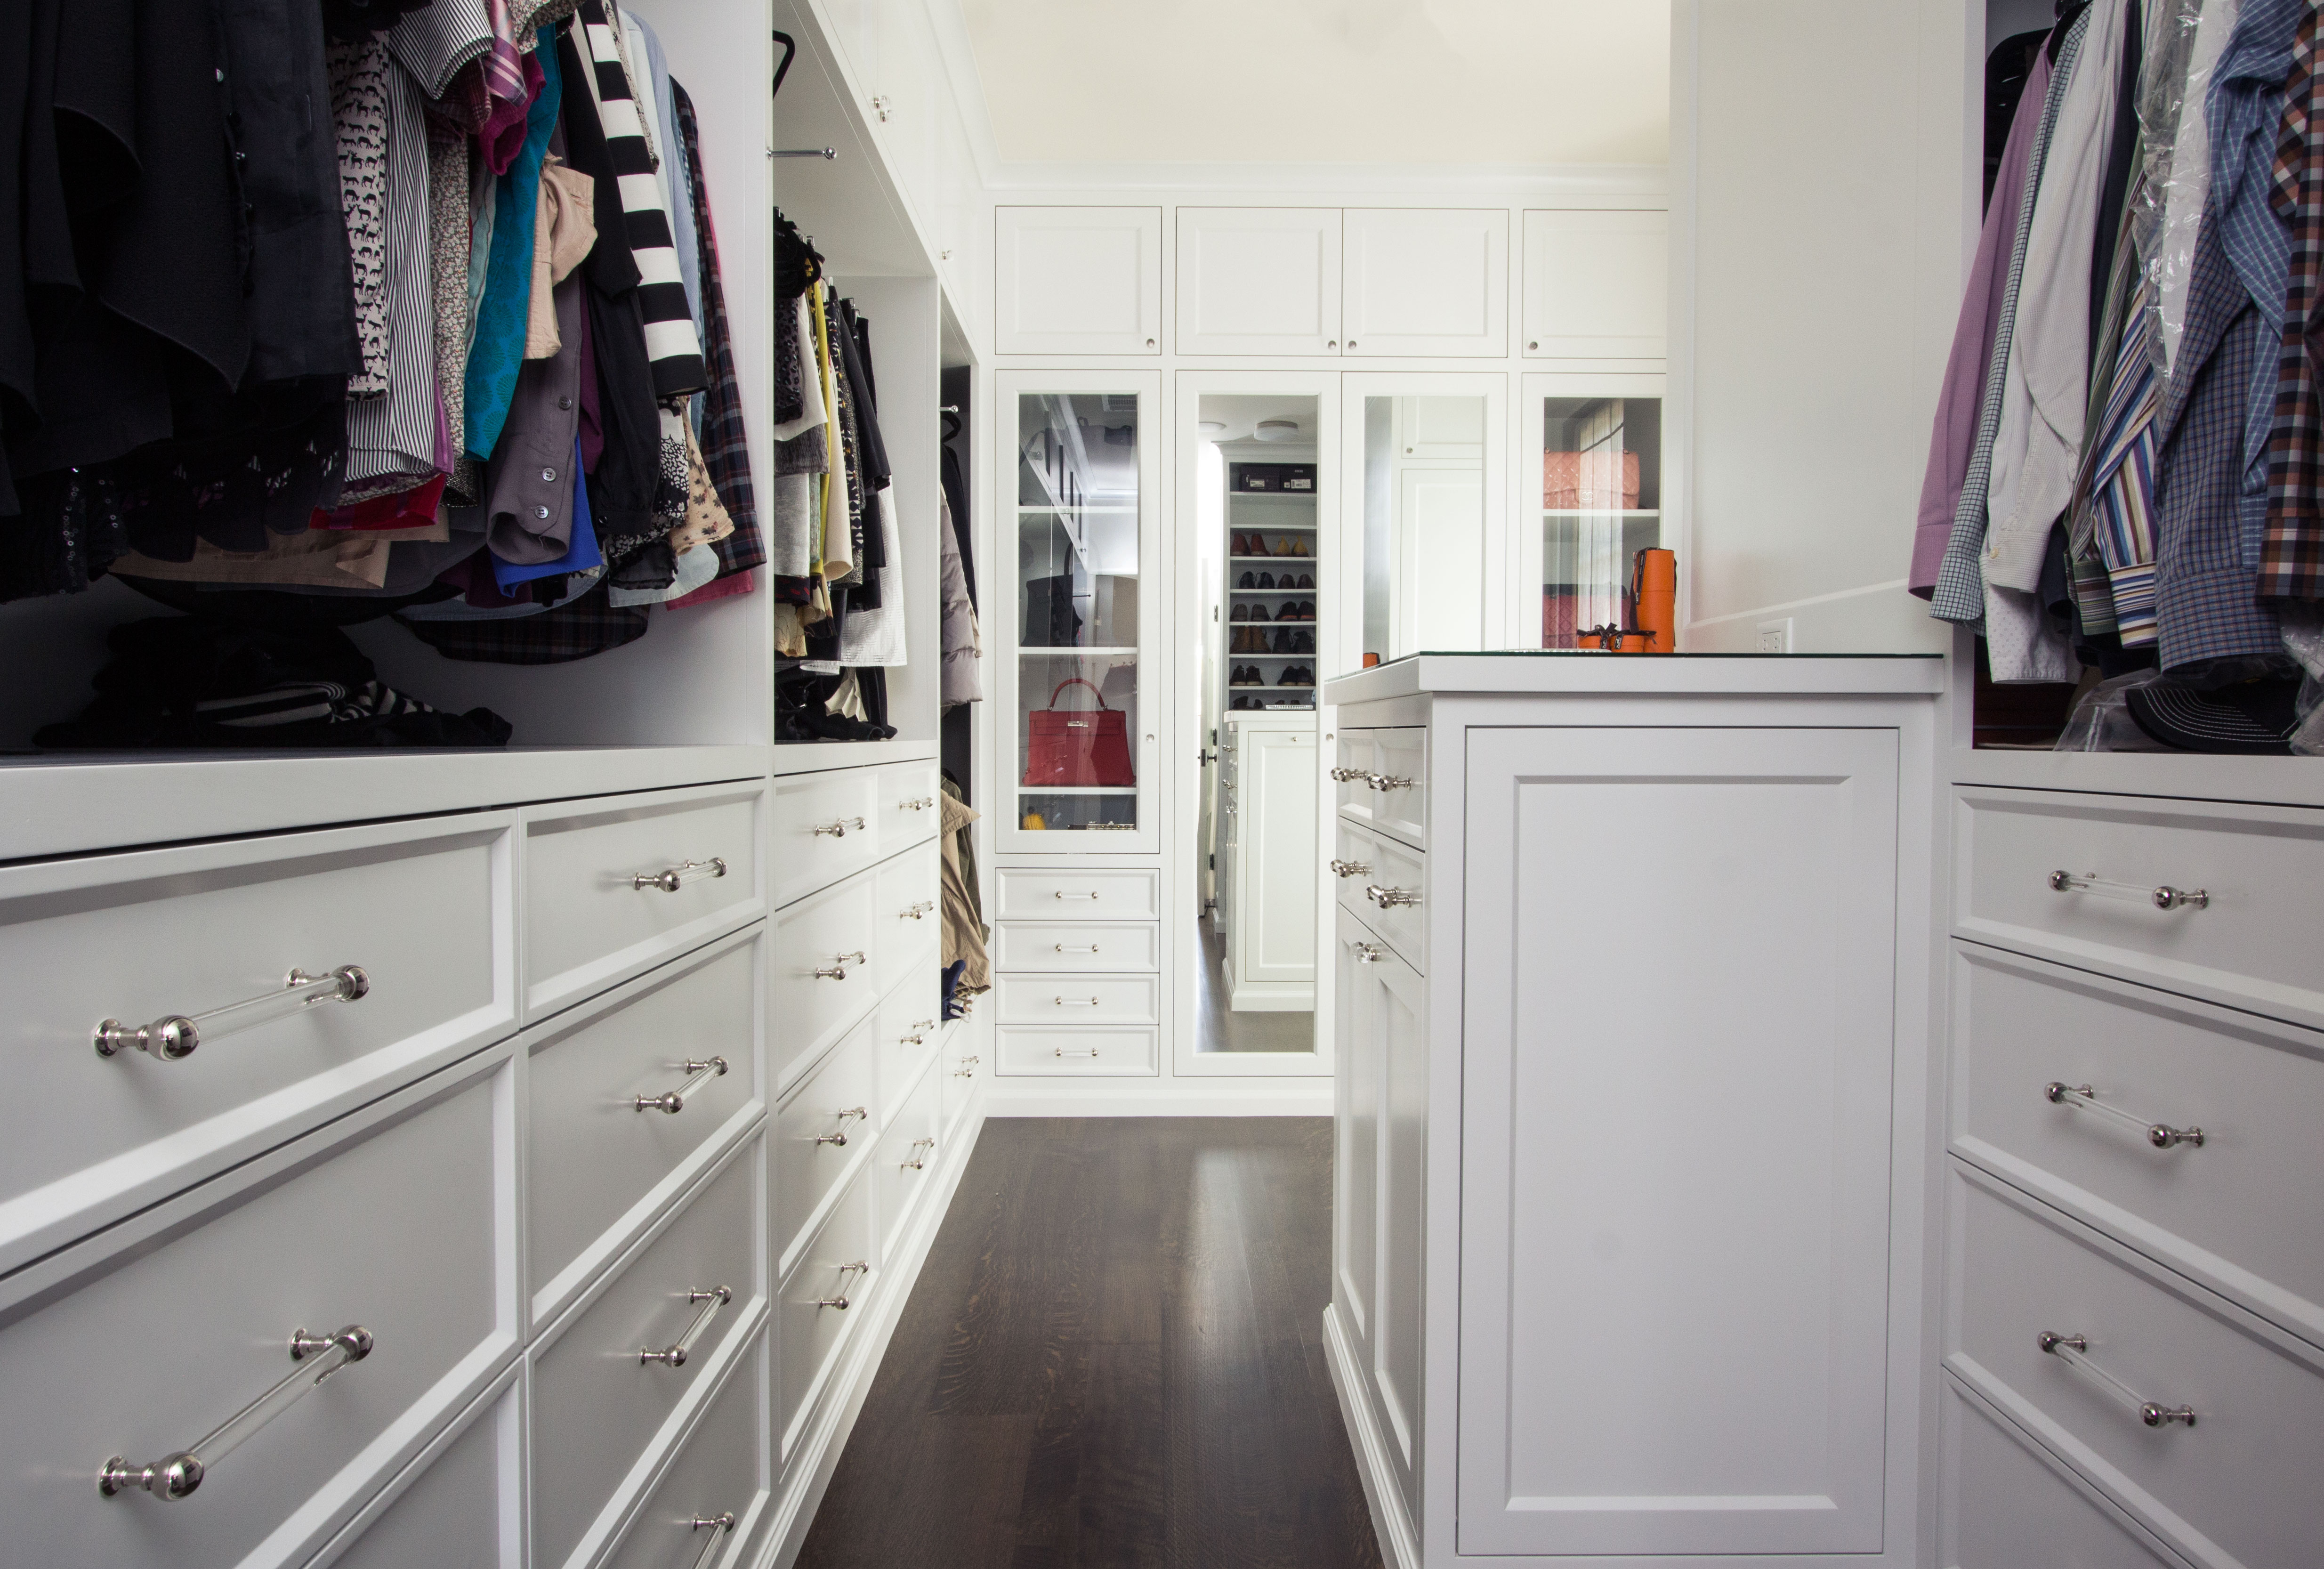 cabinets organizers solutions number offer closets design we boston storage a custom including closet of